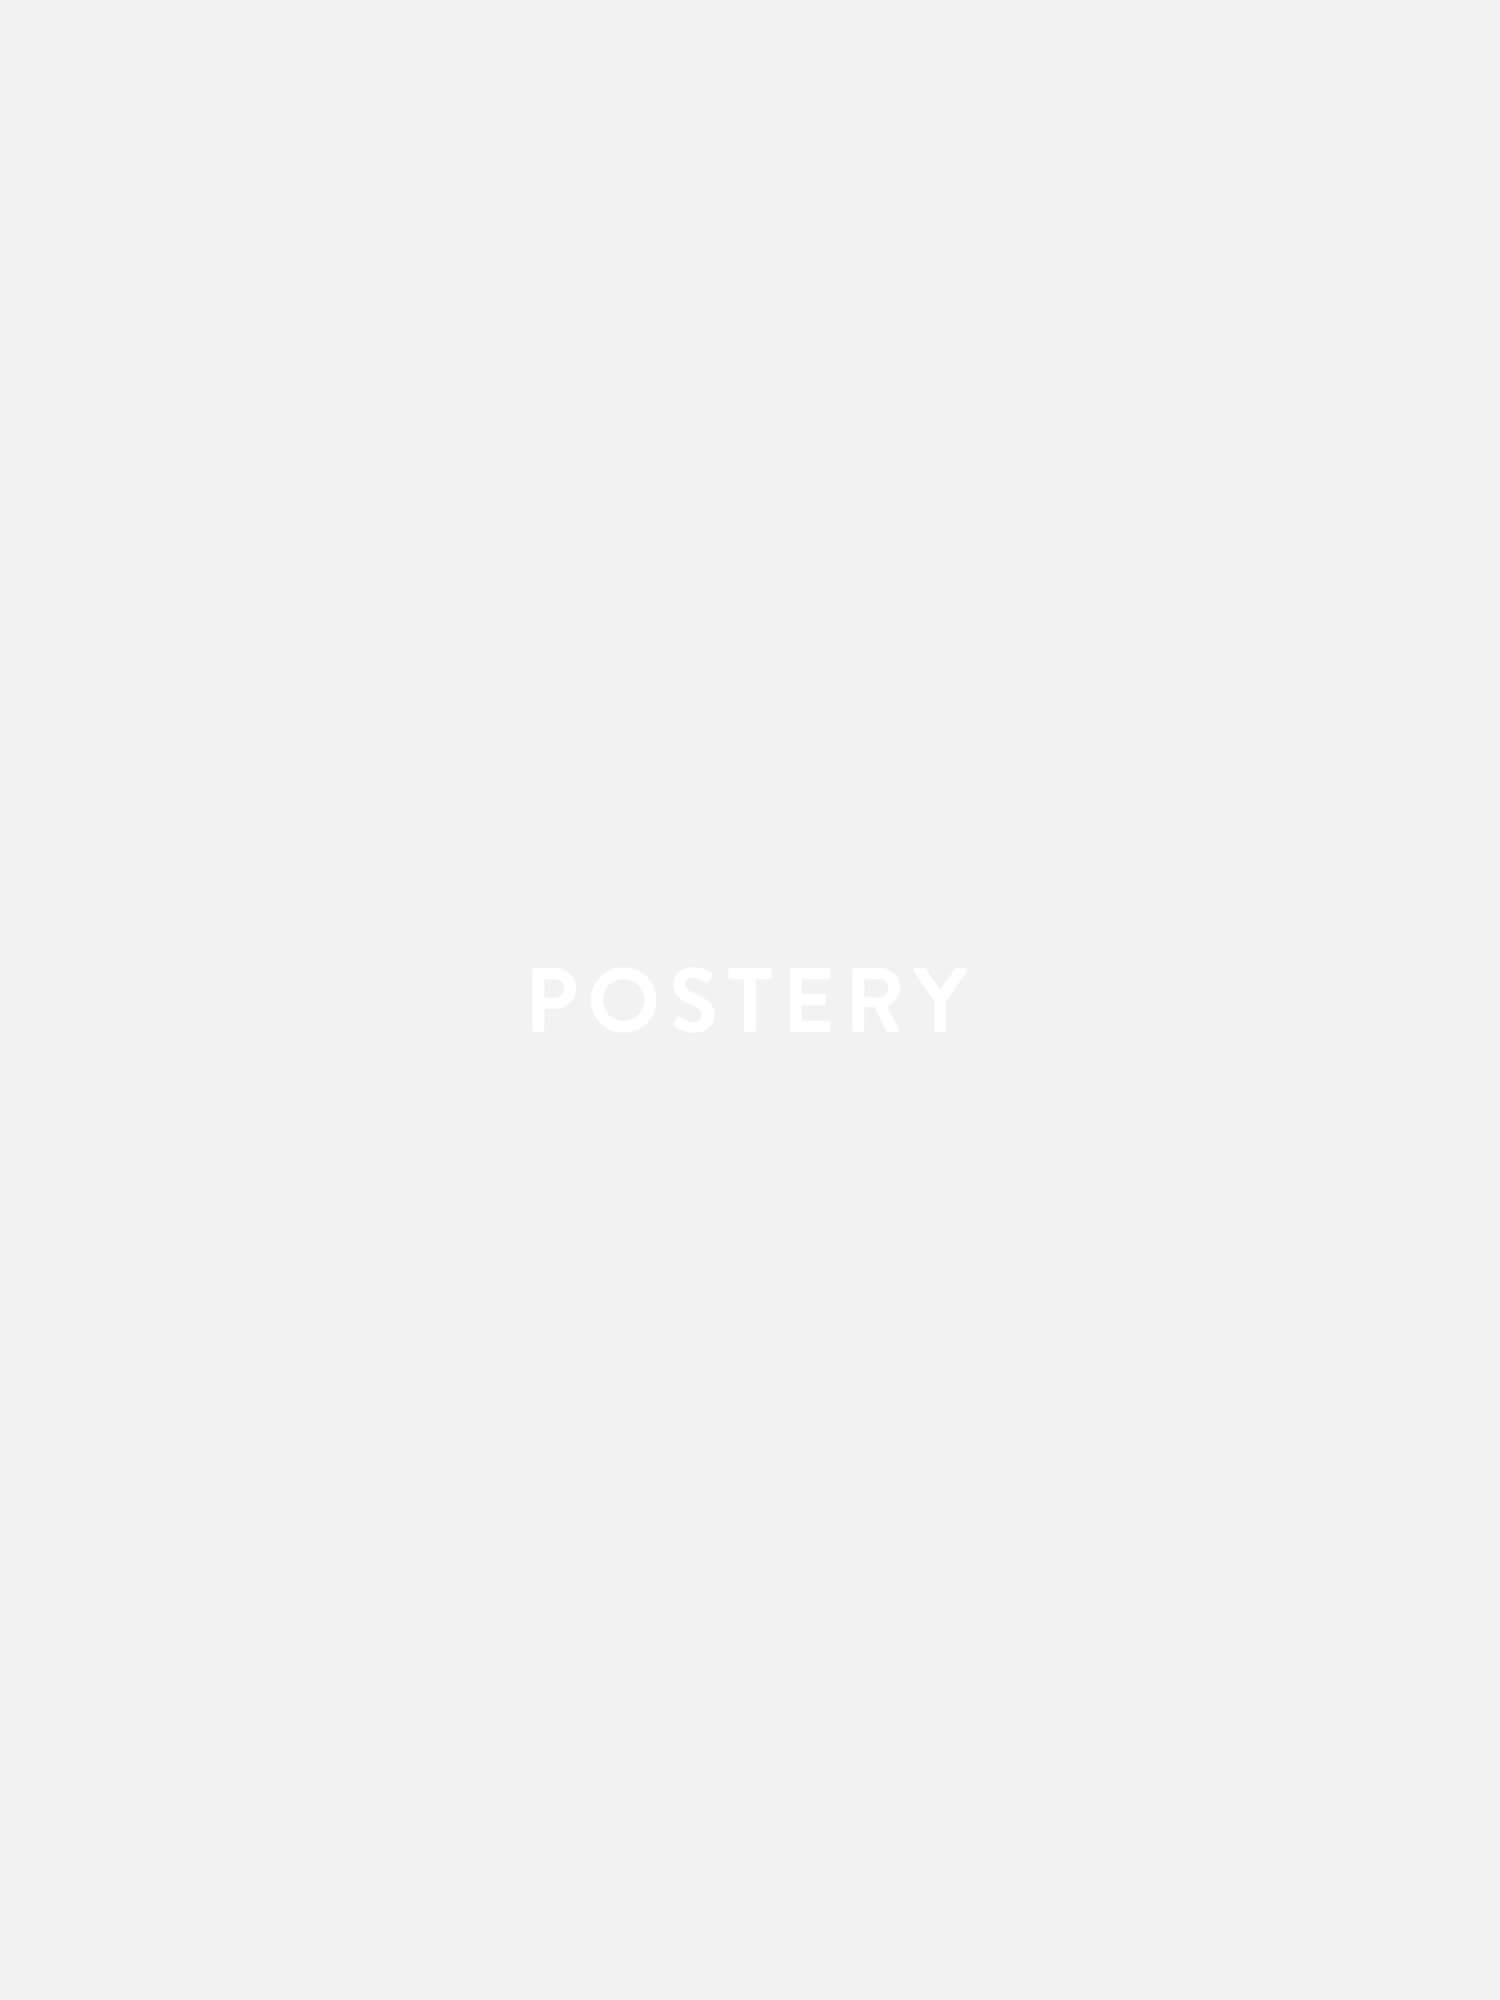 Abstract Mountain Poster